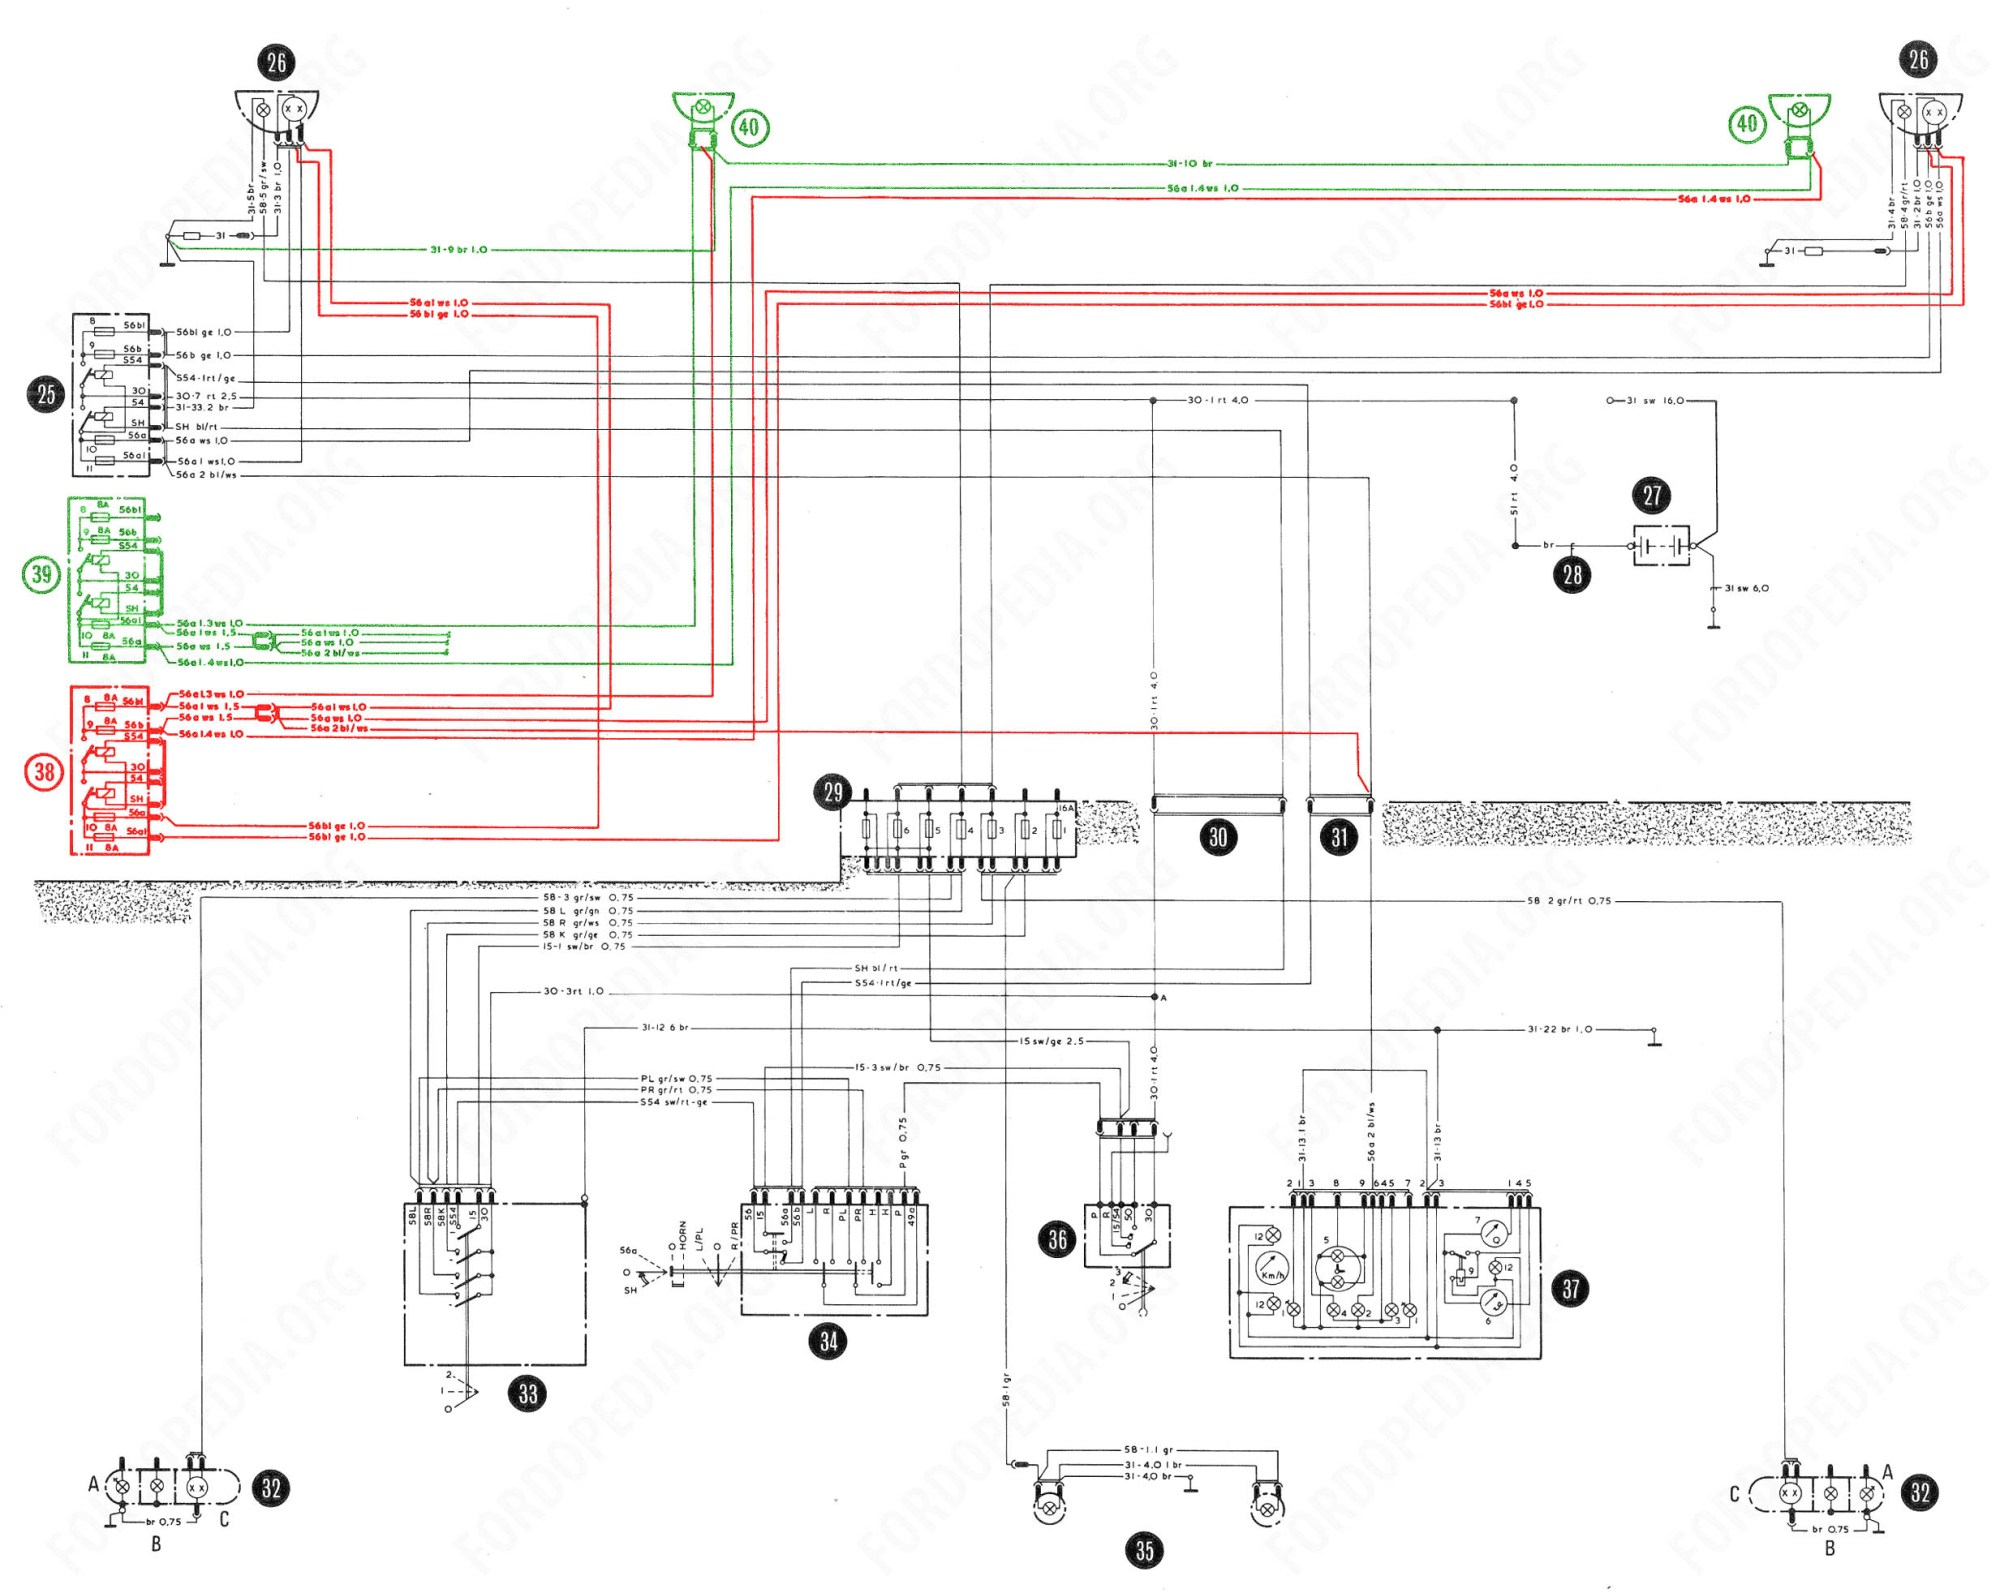 hight resolution of download full size image 2465x1964 548 kb wiring diagrams taunus tc2 cortina mk4 base version l version gl